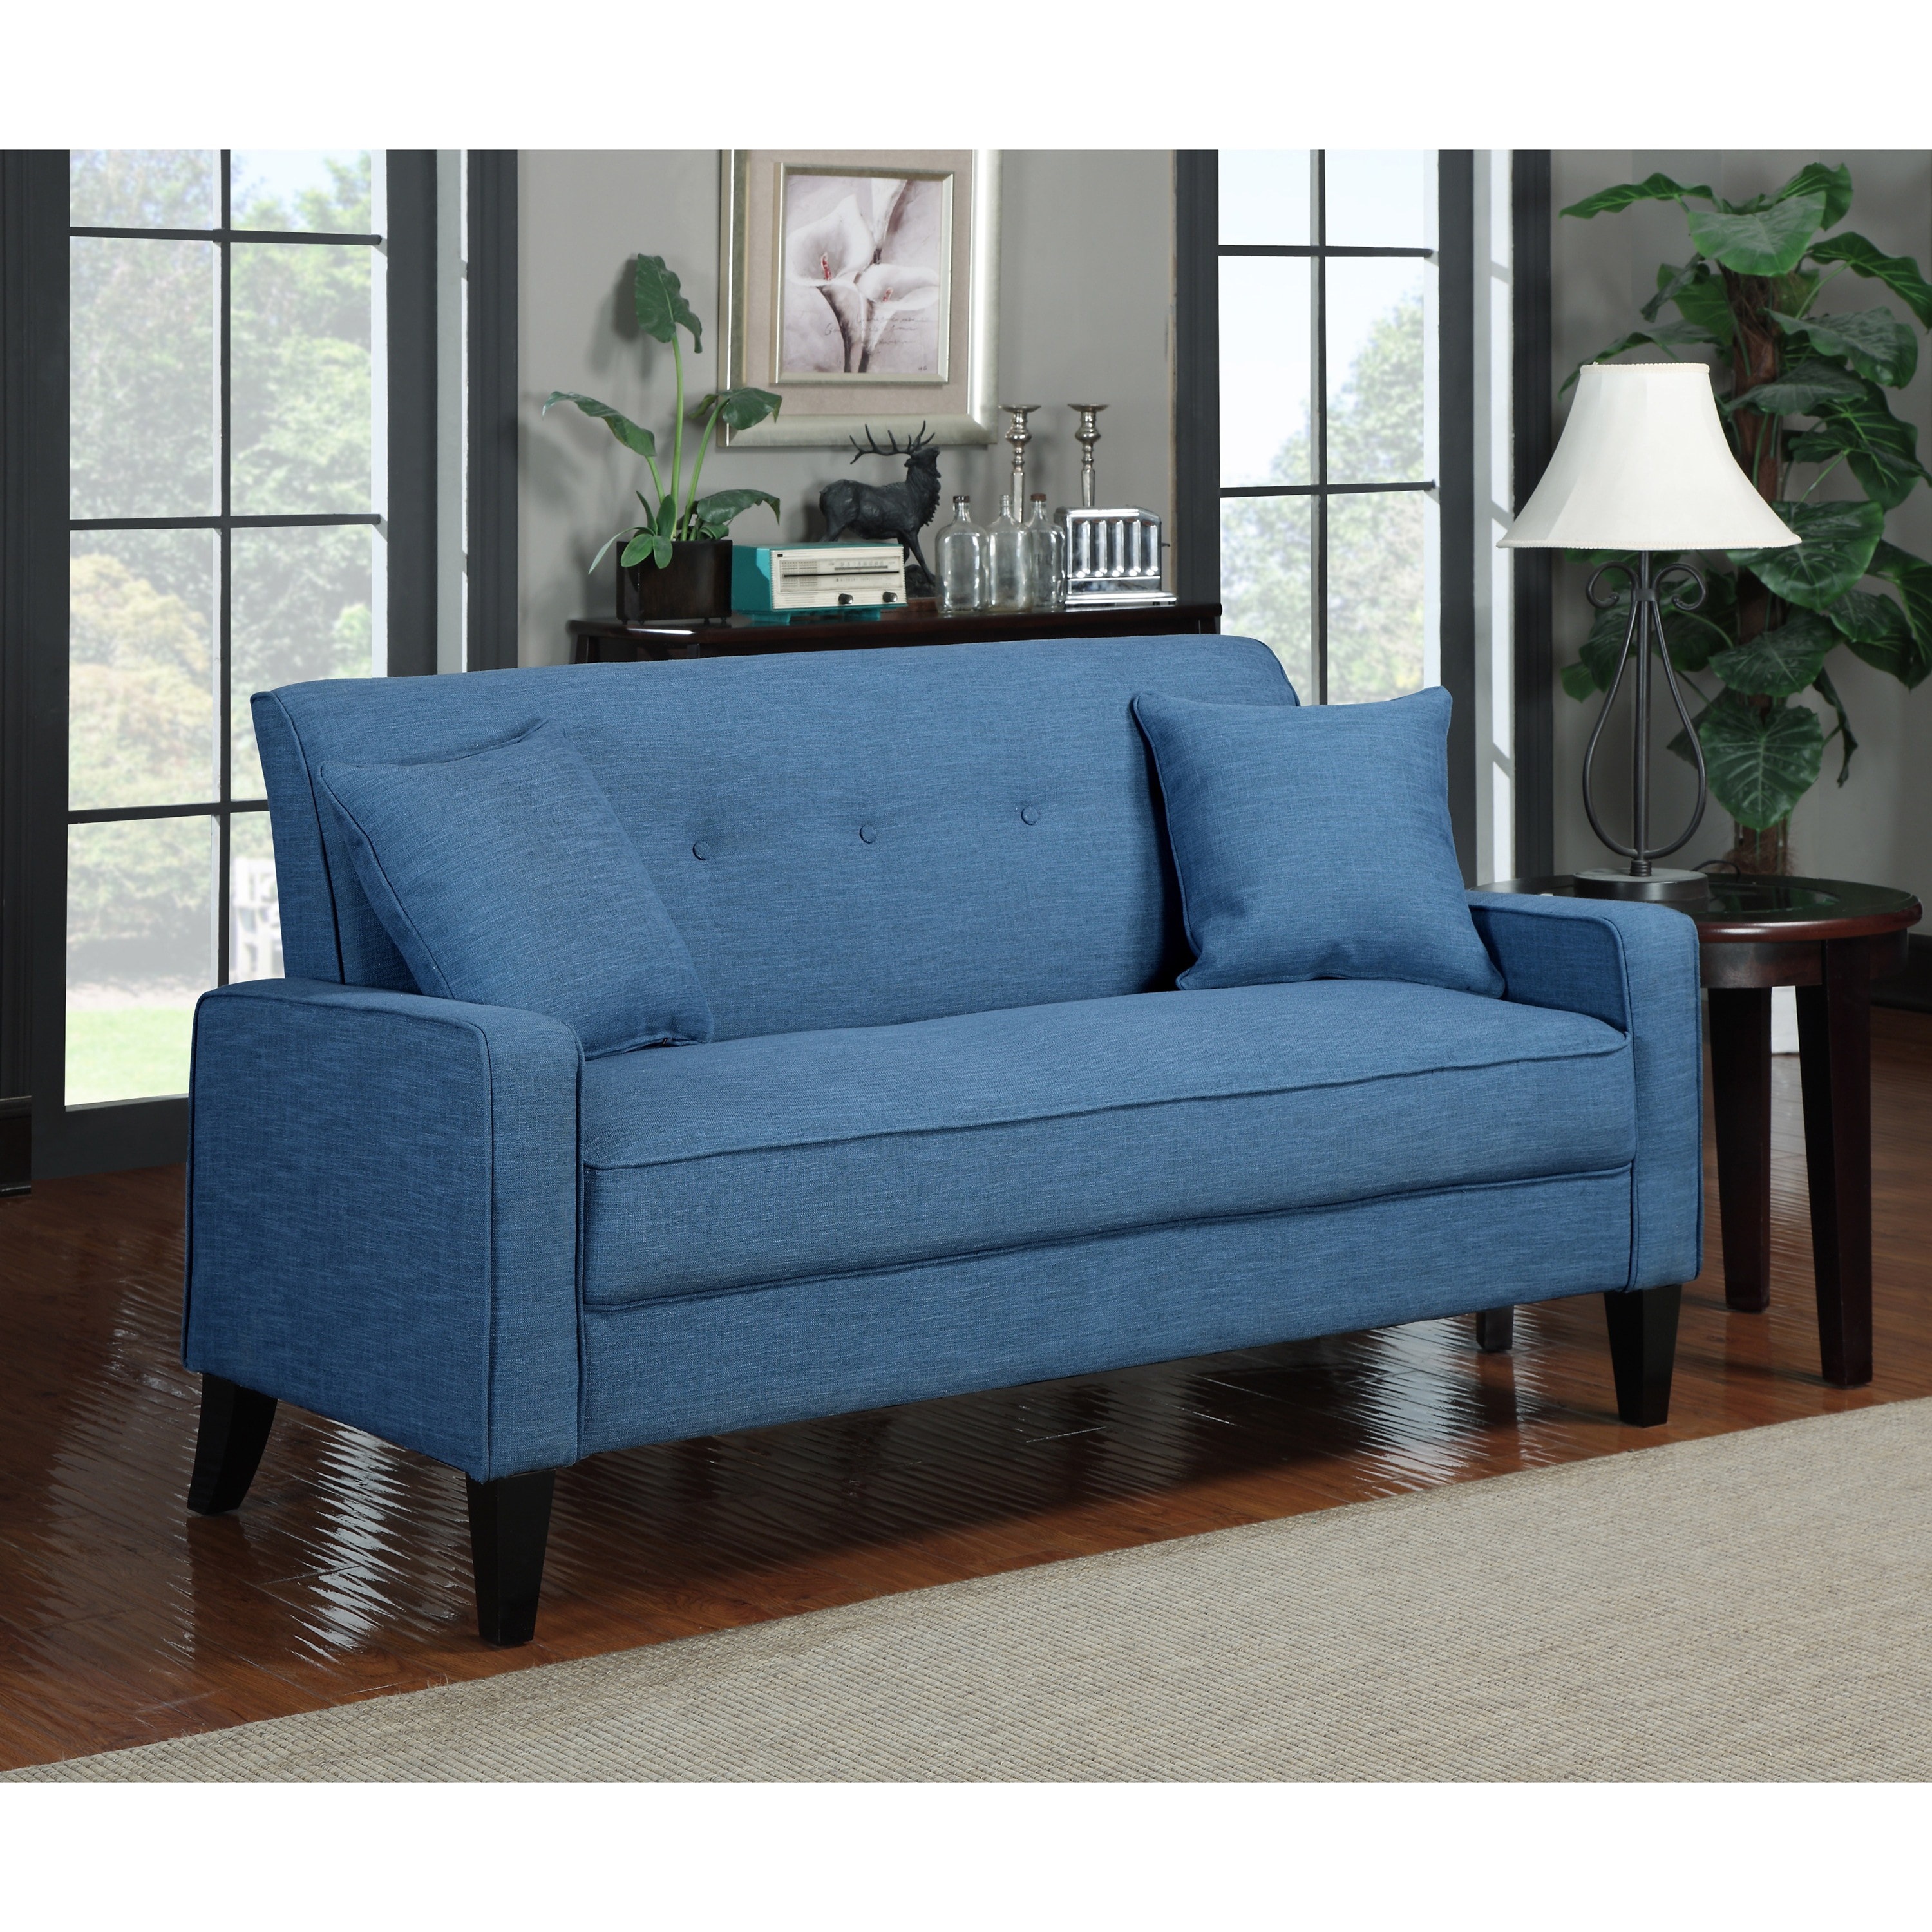 Shop Handy Living Ellie Caribbean Blue Linen Sofa - Free Shipping On ...